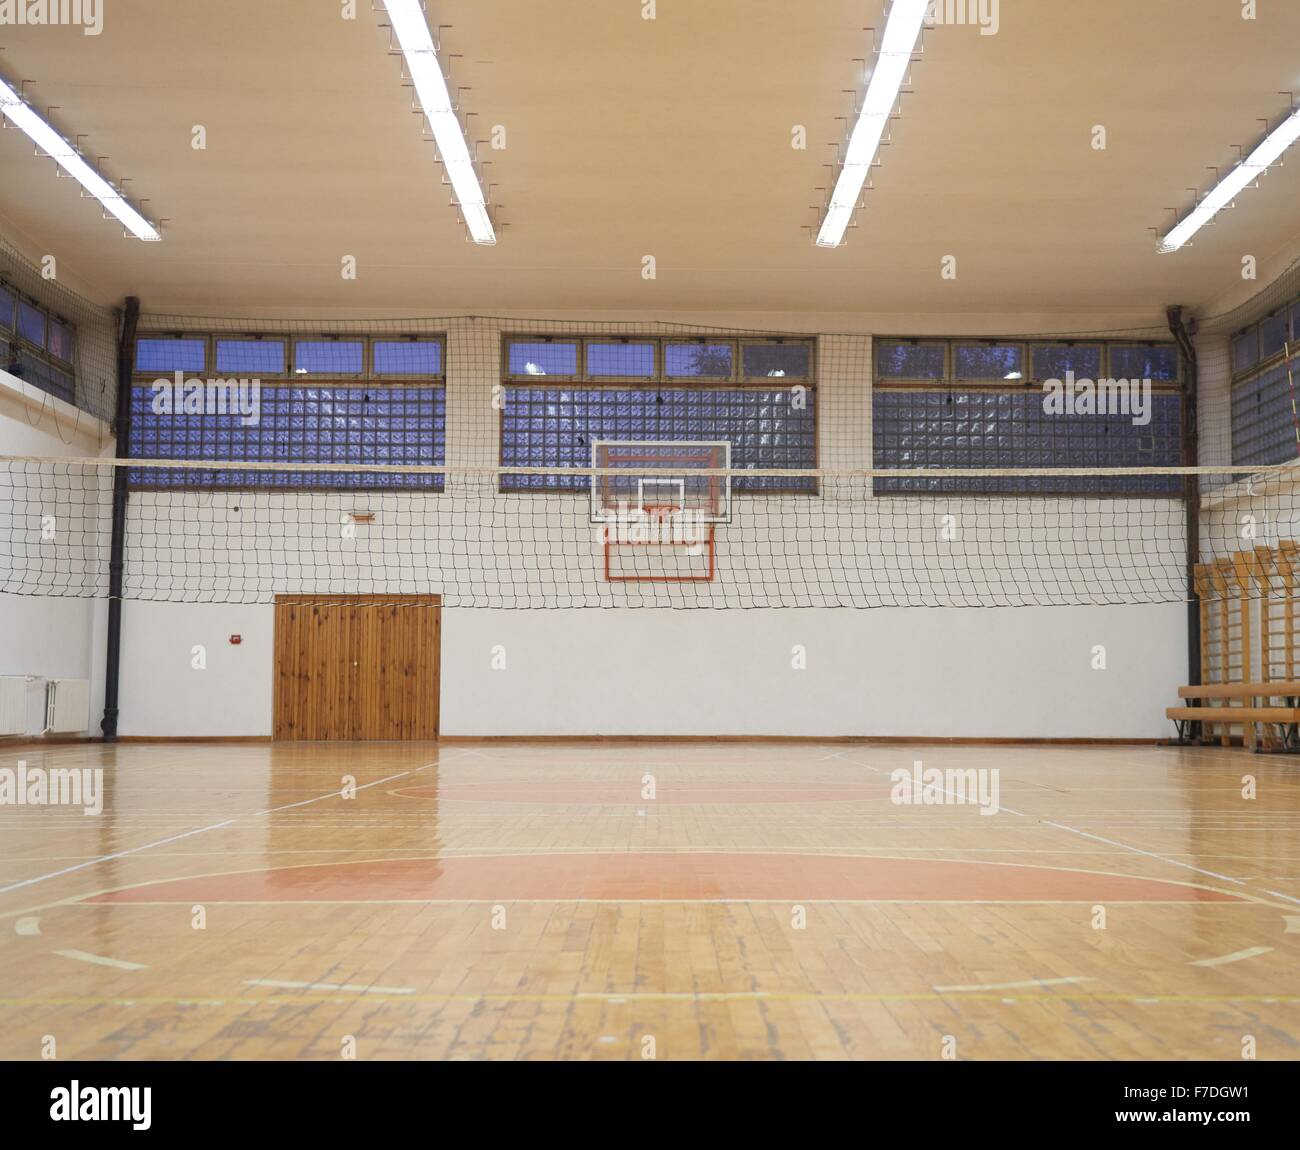 elementary school gym indoor with volleyball net Stock Photo ...